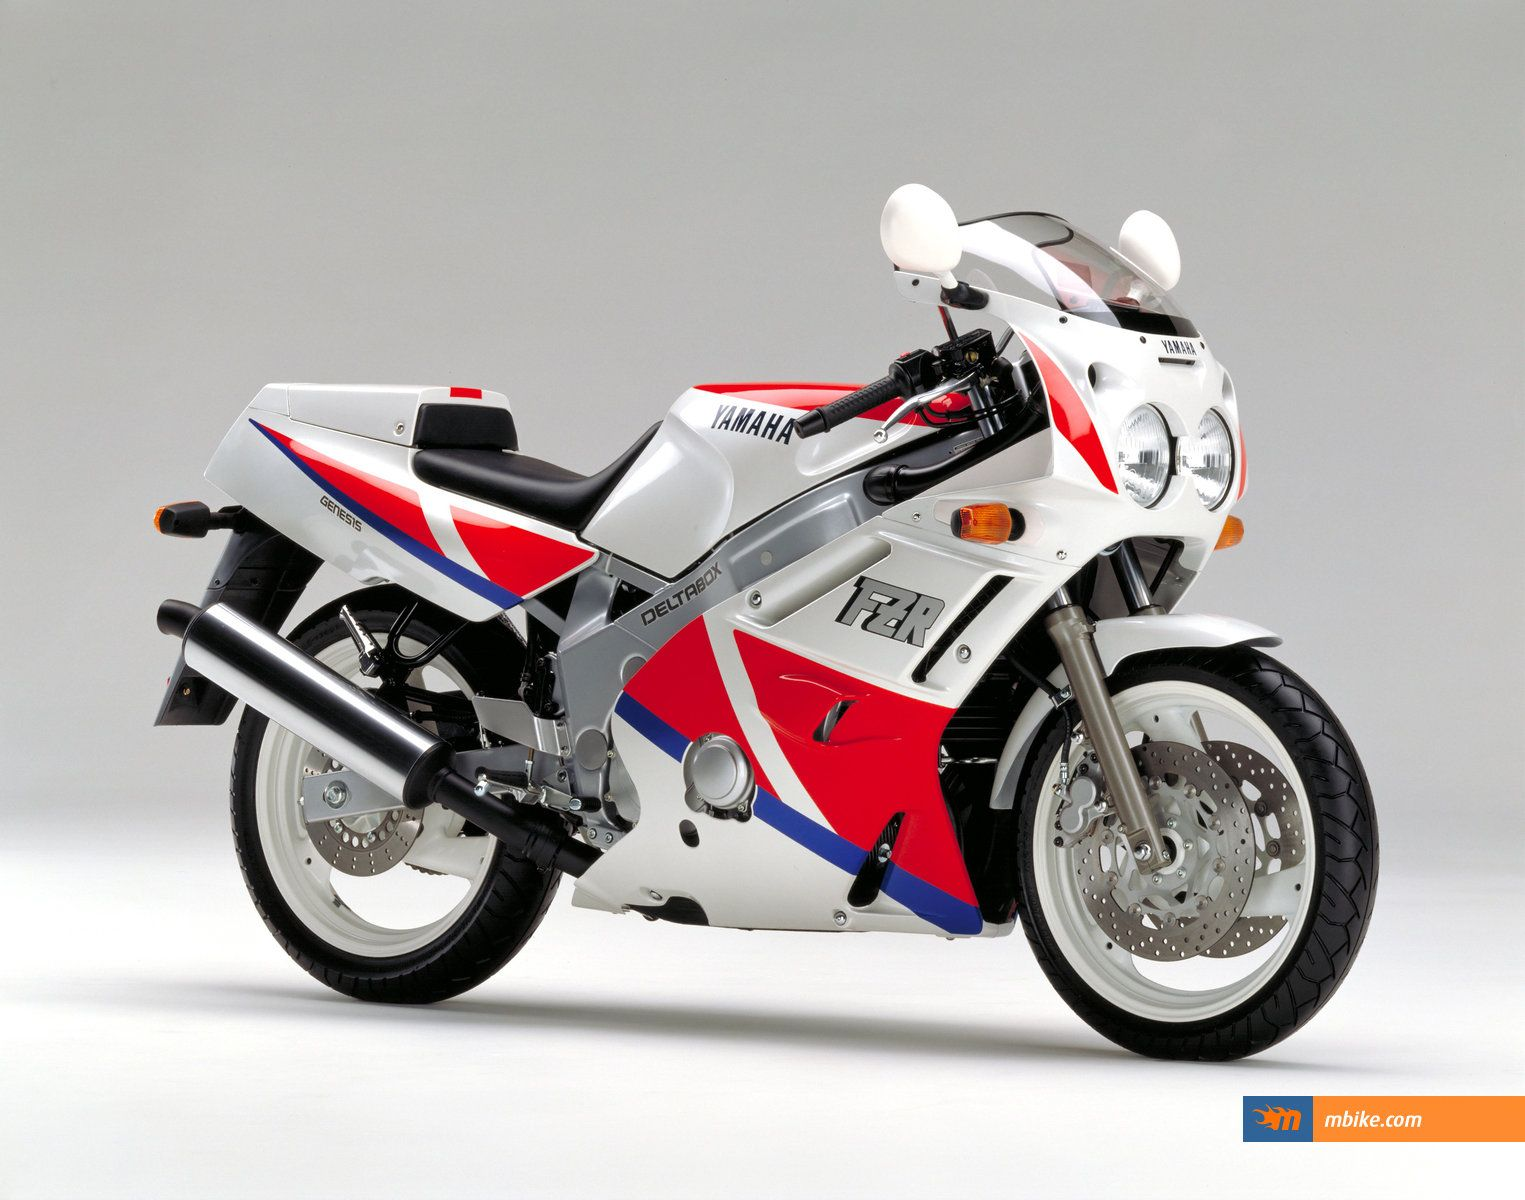 1990 Yamaha FZR600. One of the first real sportbikes.